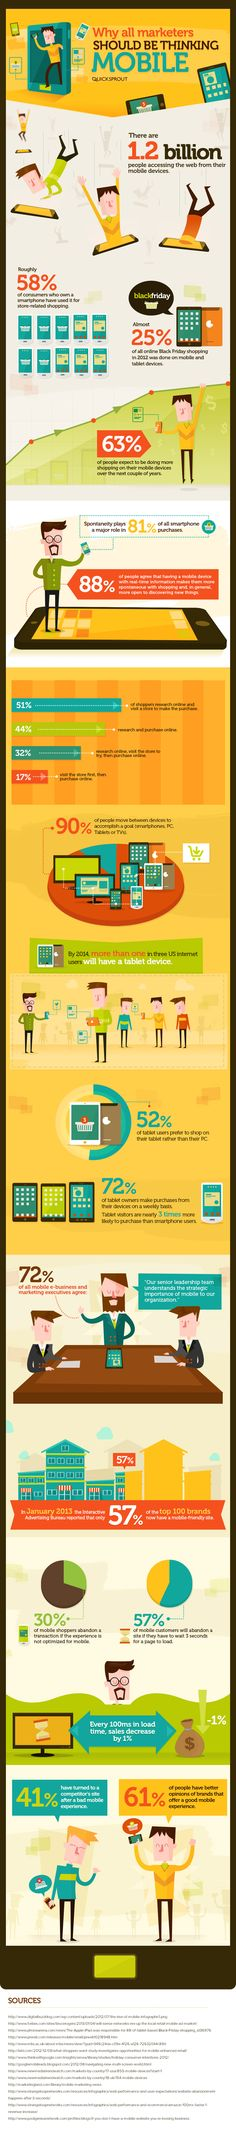 'Why All Marketers Should Be Thinking Mobile' via @Mark Nicholson Journal - http://infographicjournal.com/why-all-marketers-should-be-thinking-mobile/ #mobile #socialmedia #business